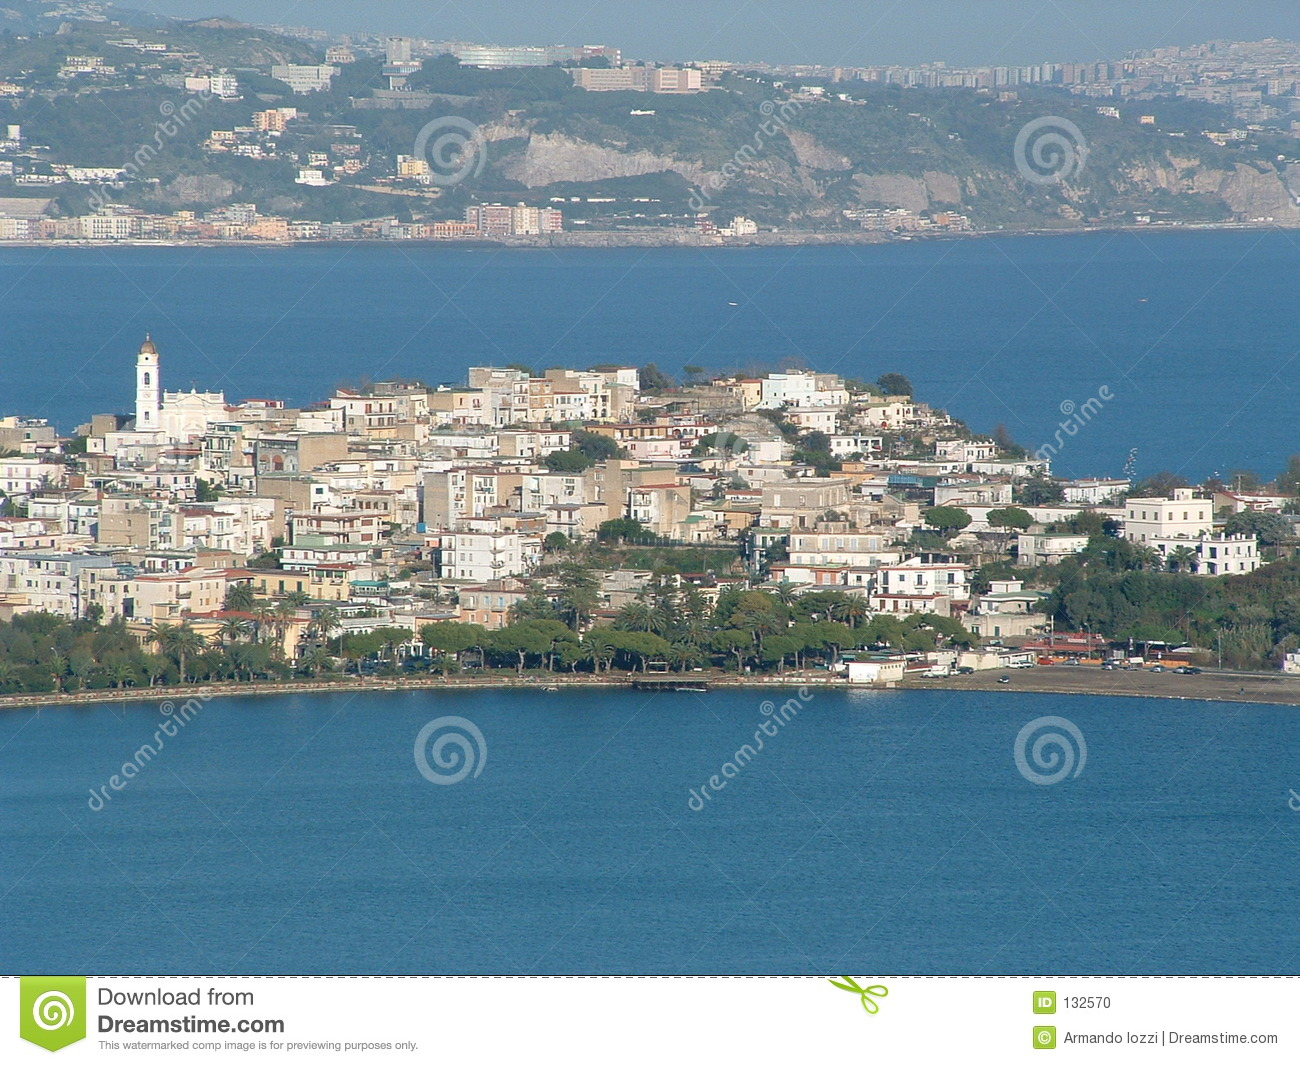 Small Town in Naples - Italy